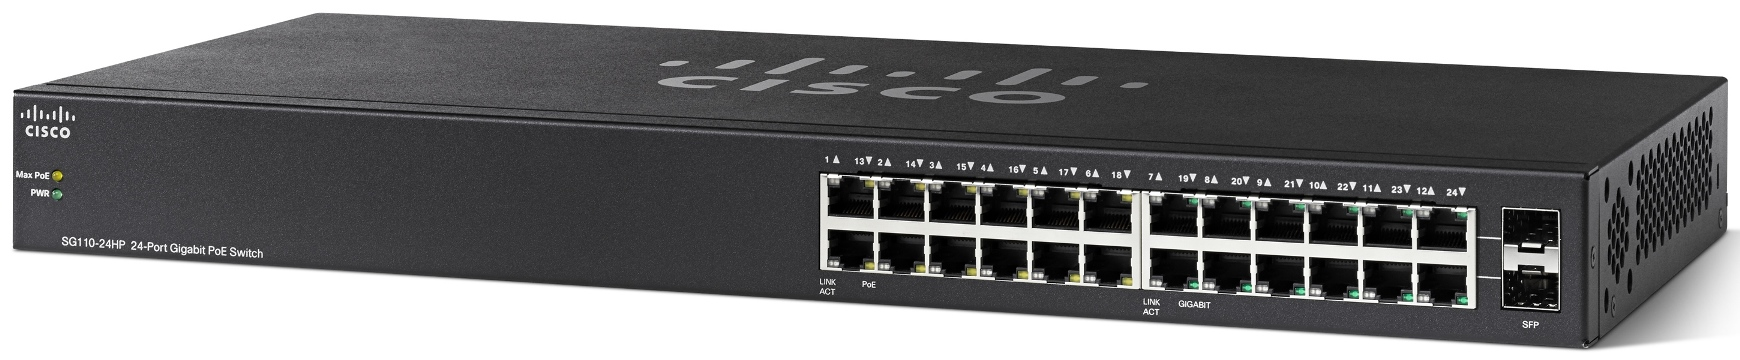 Cisco SG110-24HP 24-Port PoE Gigabit Switch